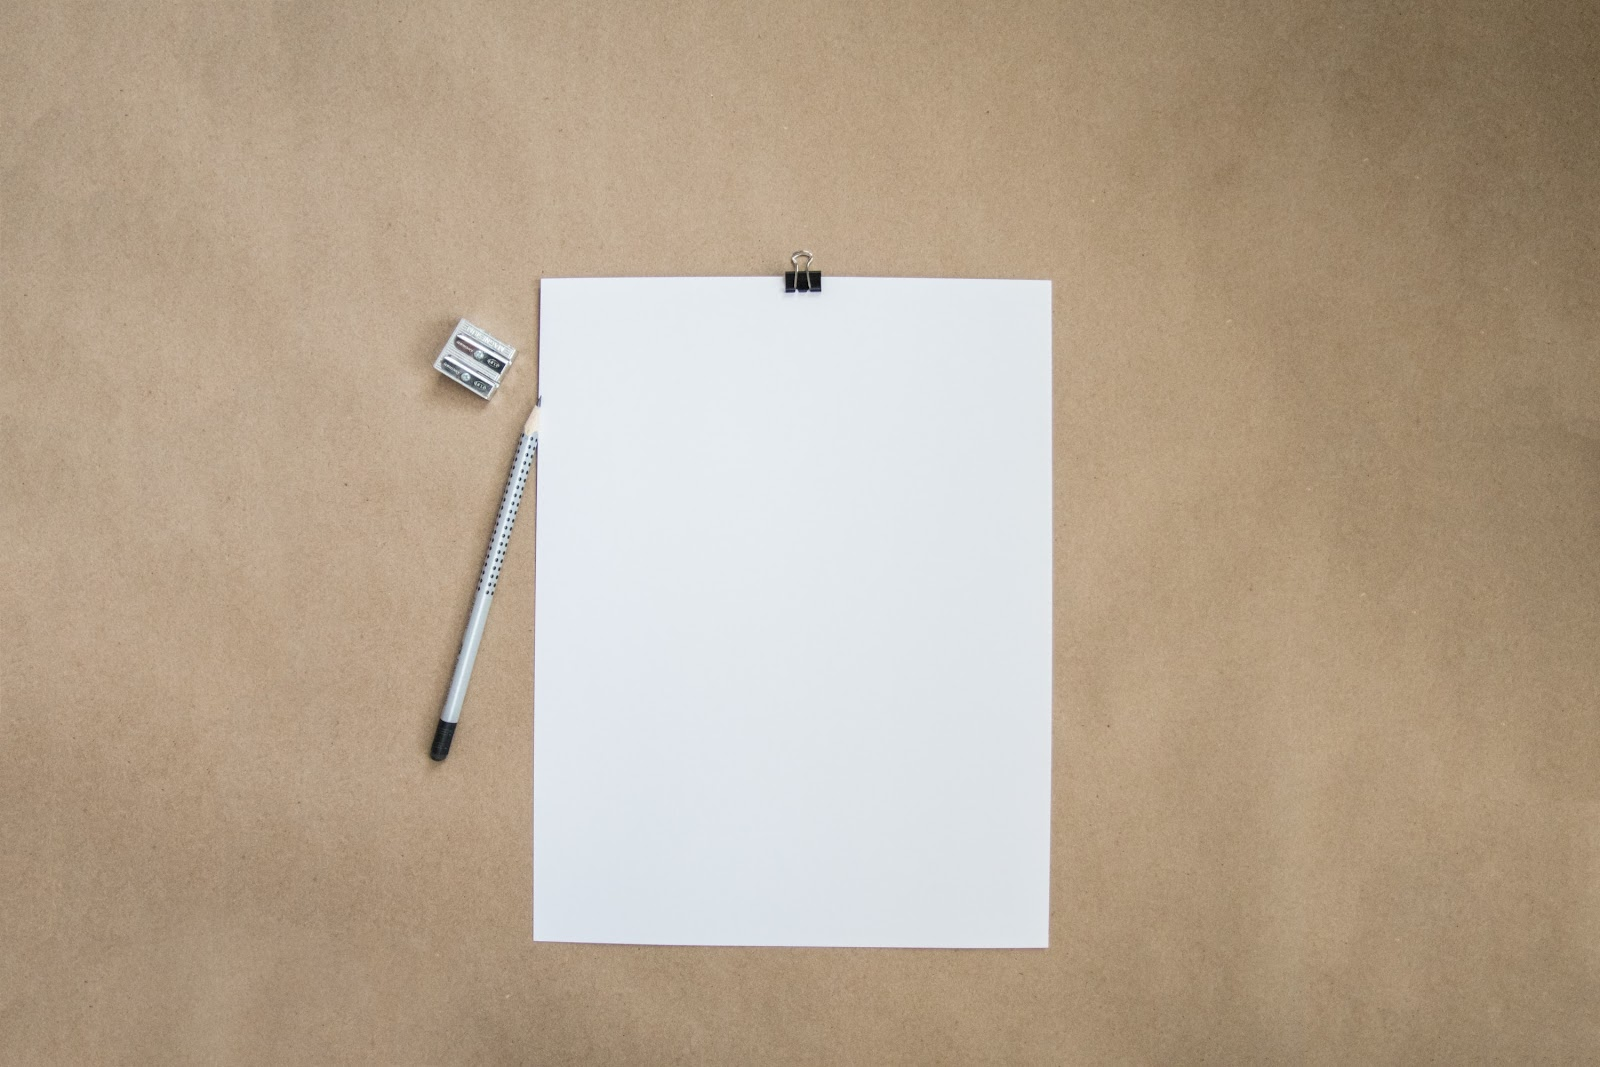 Blank paper with pencil and pencil sharpener